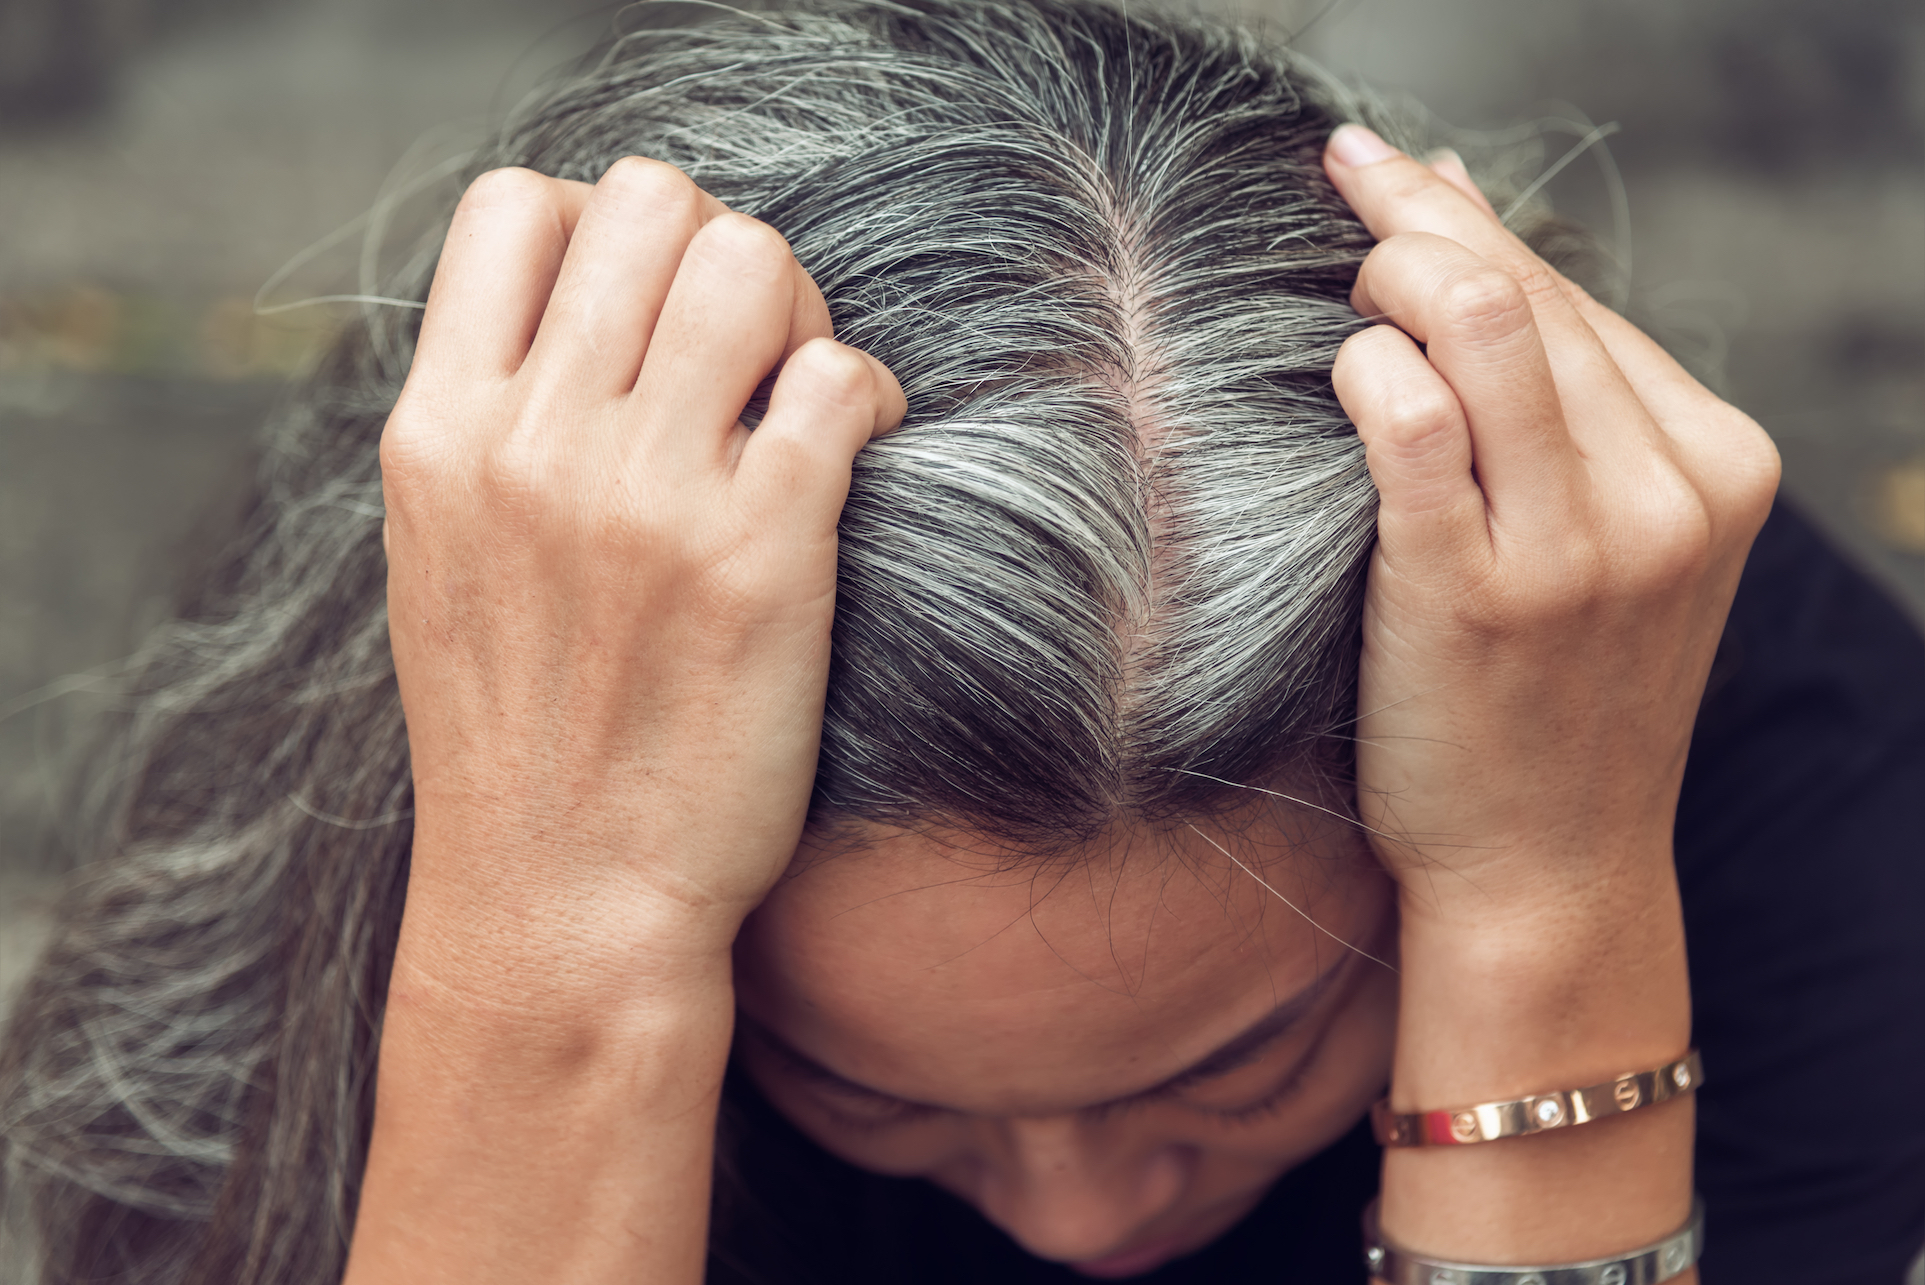 Stress actually can turn your hair gray, according to researchers at the University of Alabama Birmingham. The experts discovered a connection between the genes that trigger immune response and the regulation of hair and skin color.